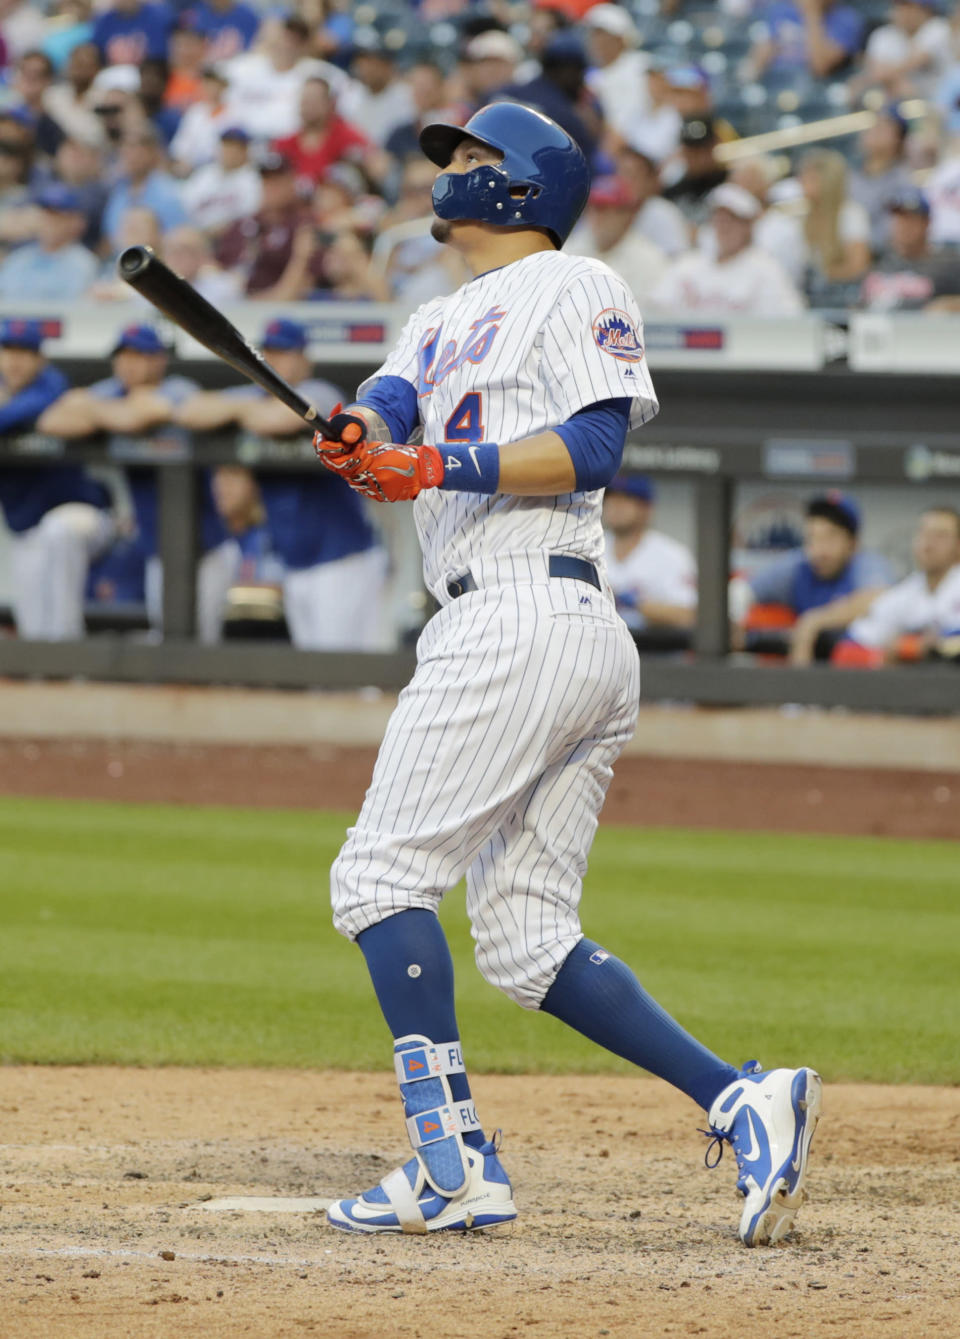 New York Mets' Wilmer Flores (4) follows through on a home run during the tenth inning in the first game of a baseball doubleheader against the Philadelphia Phillies Monday, July 9, 2018, in New York. The Mets won 4-3. (AP Photo/Frank Franklin II)